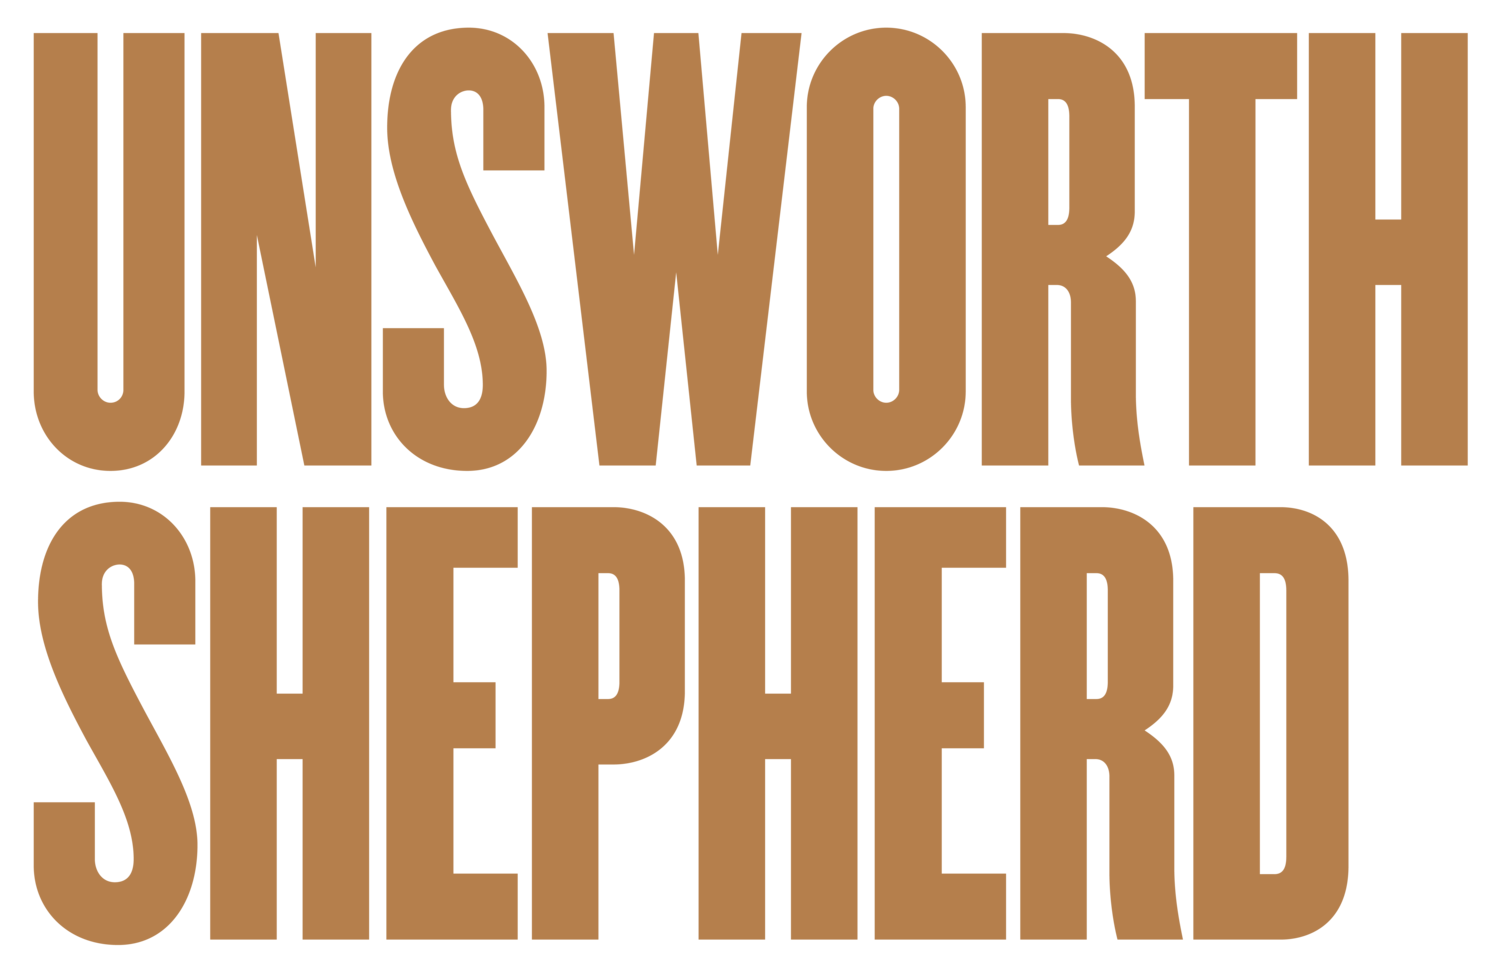 Unsworth/Shepherd